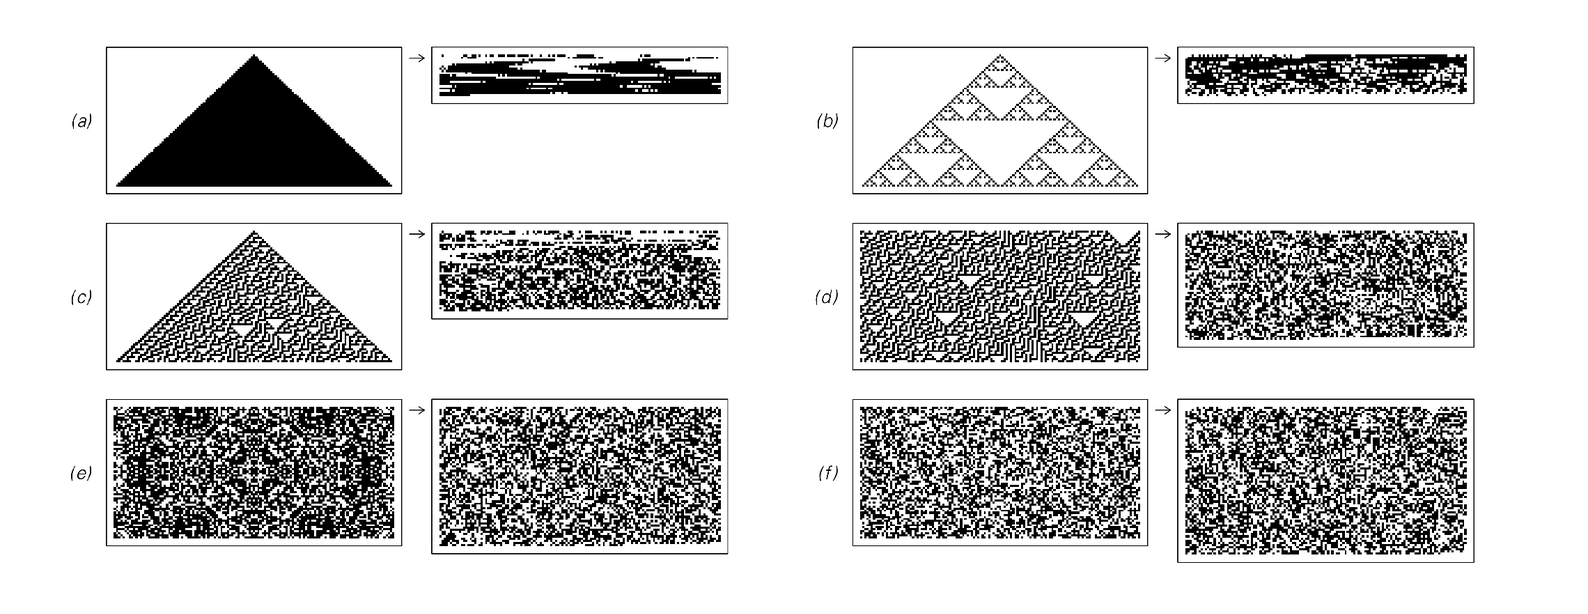 Examples of two-dimensional block-based encoding